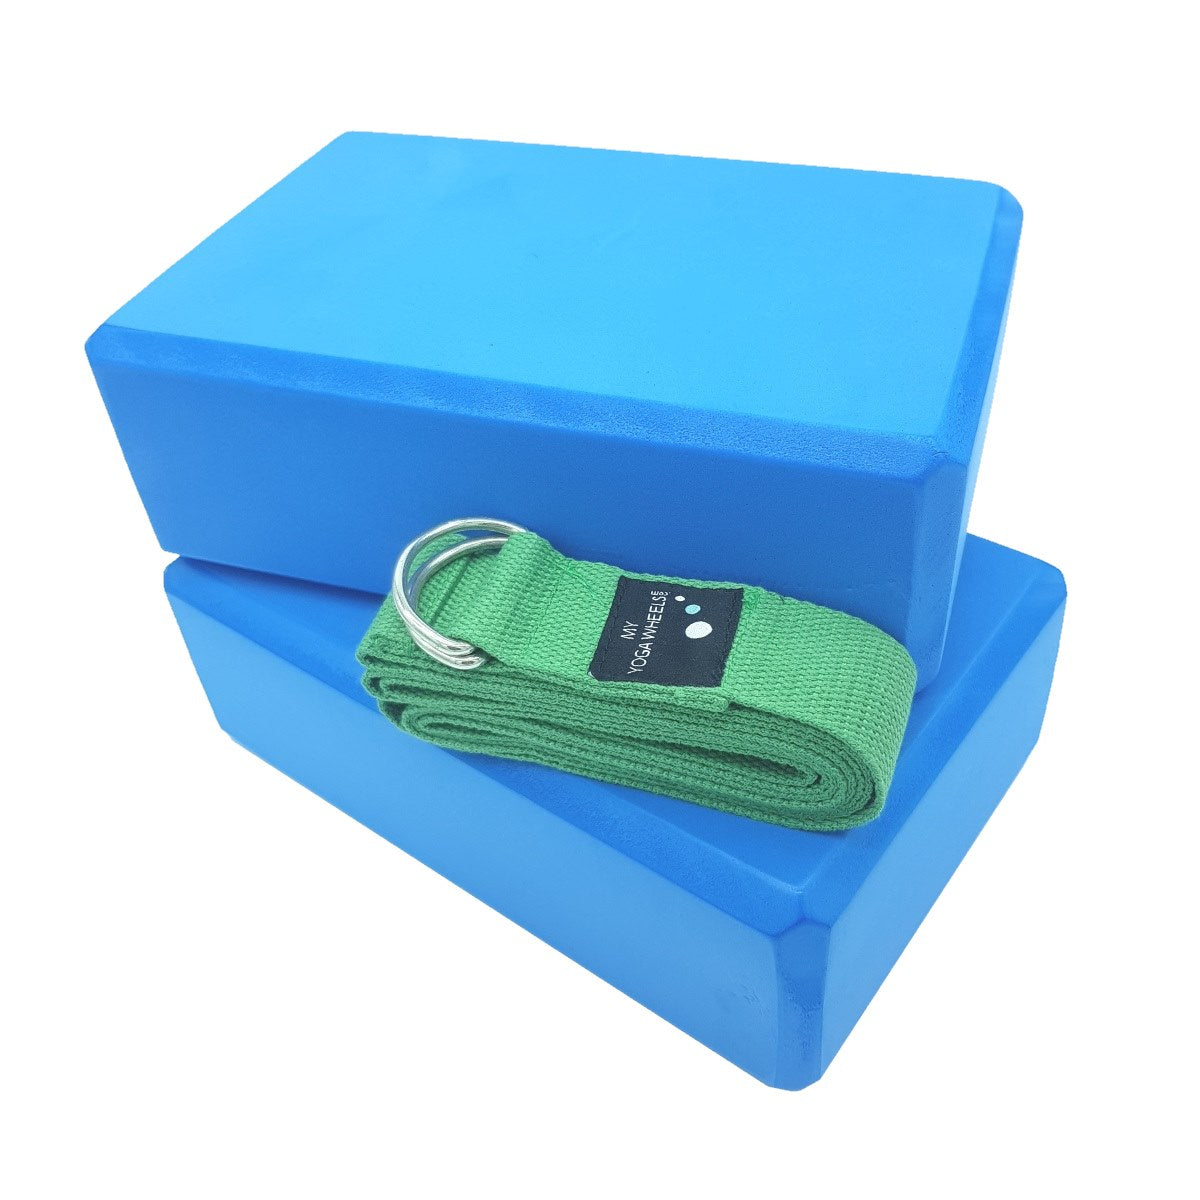 Myyogawheels Blue Yoga Blocks X2 Green Strap Set